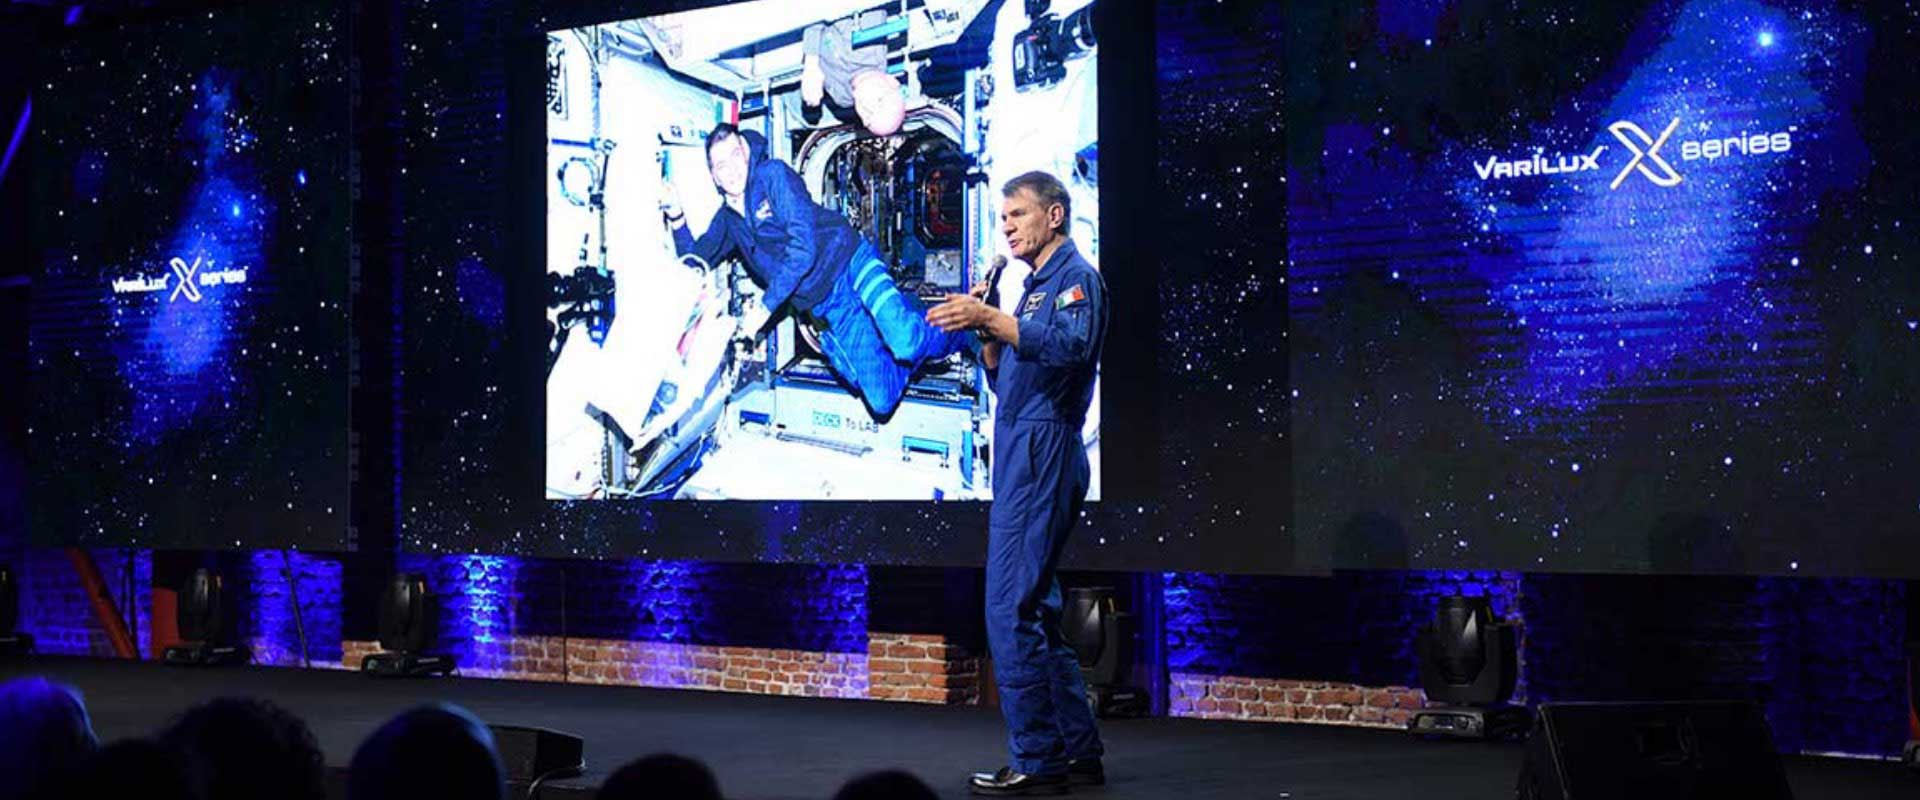 Paolo Nespoli convention evento lancio Varilux x-series Essilor